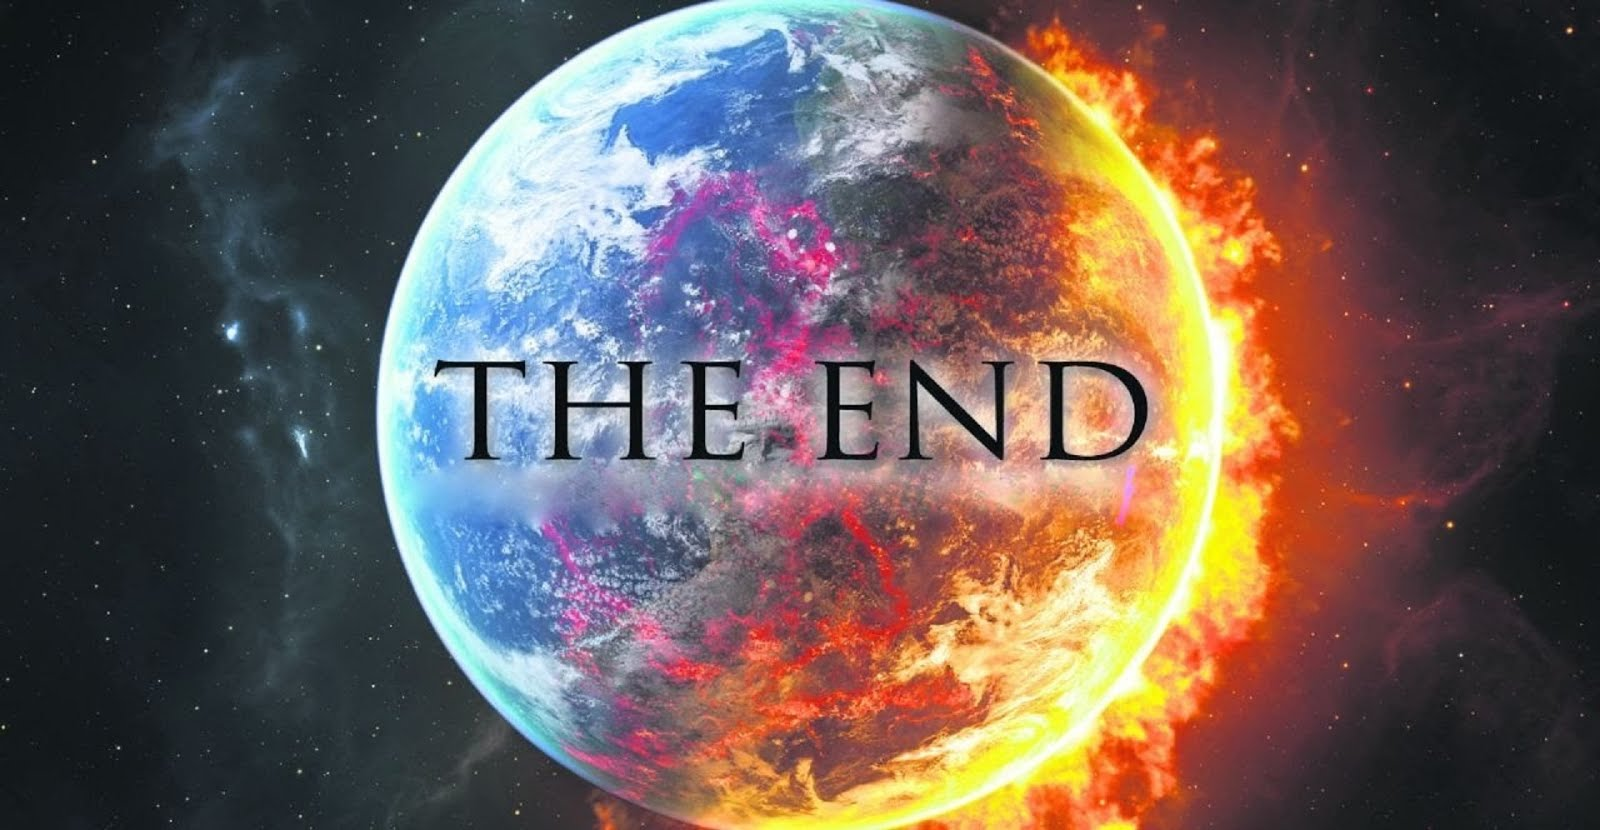 THE END - OF THE WORLD